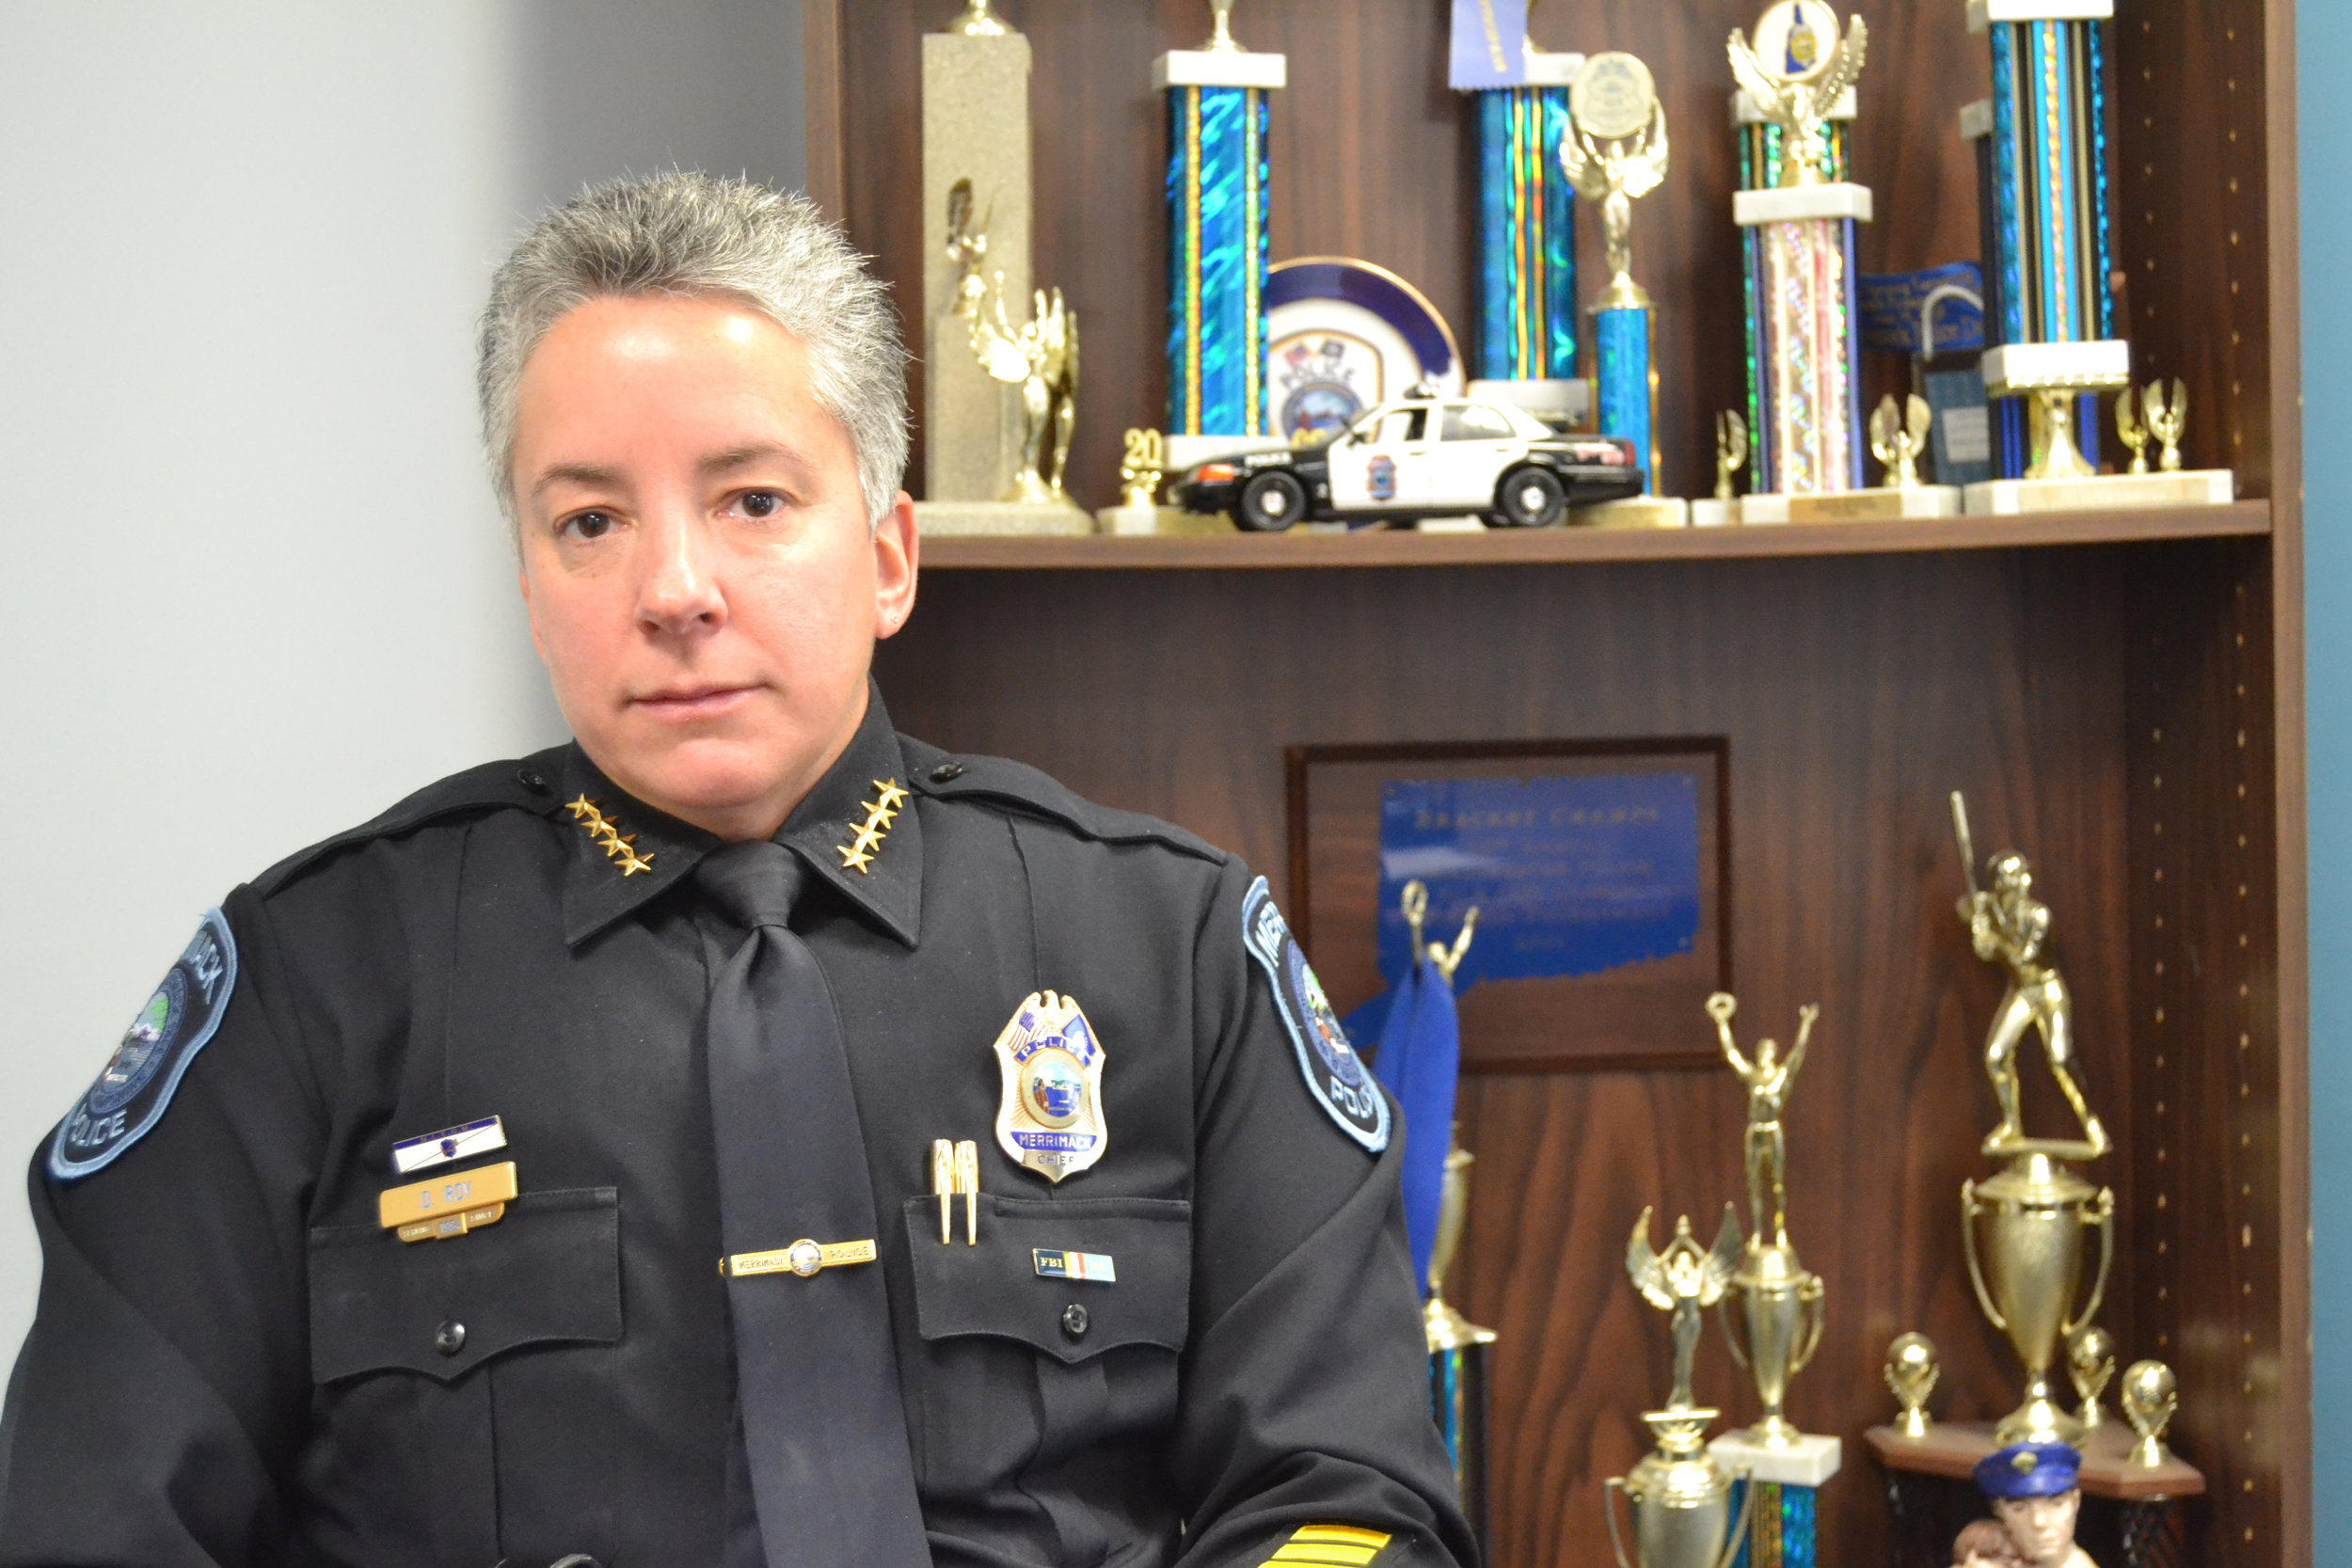 """Merrimack Police Chief Denise Roy calls the town's influx of meth """"an infestation"""" that her department plans to eradicate.  CREDIT PAIGE SUTHERLAND/NHPR"""